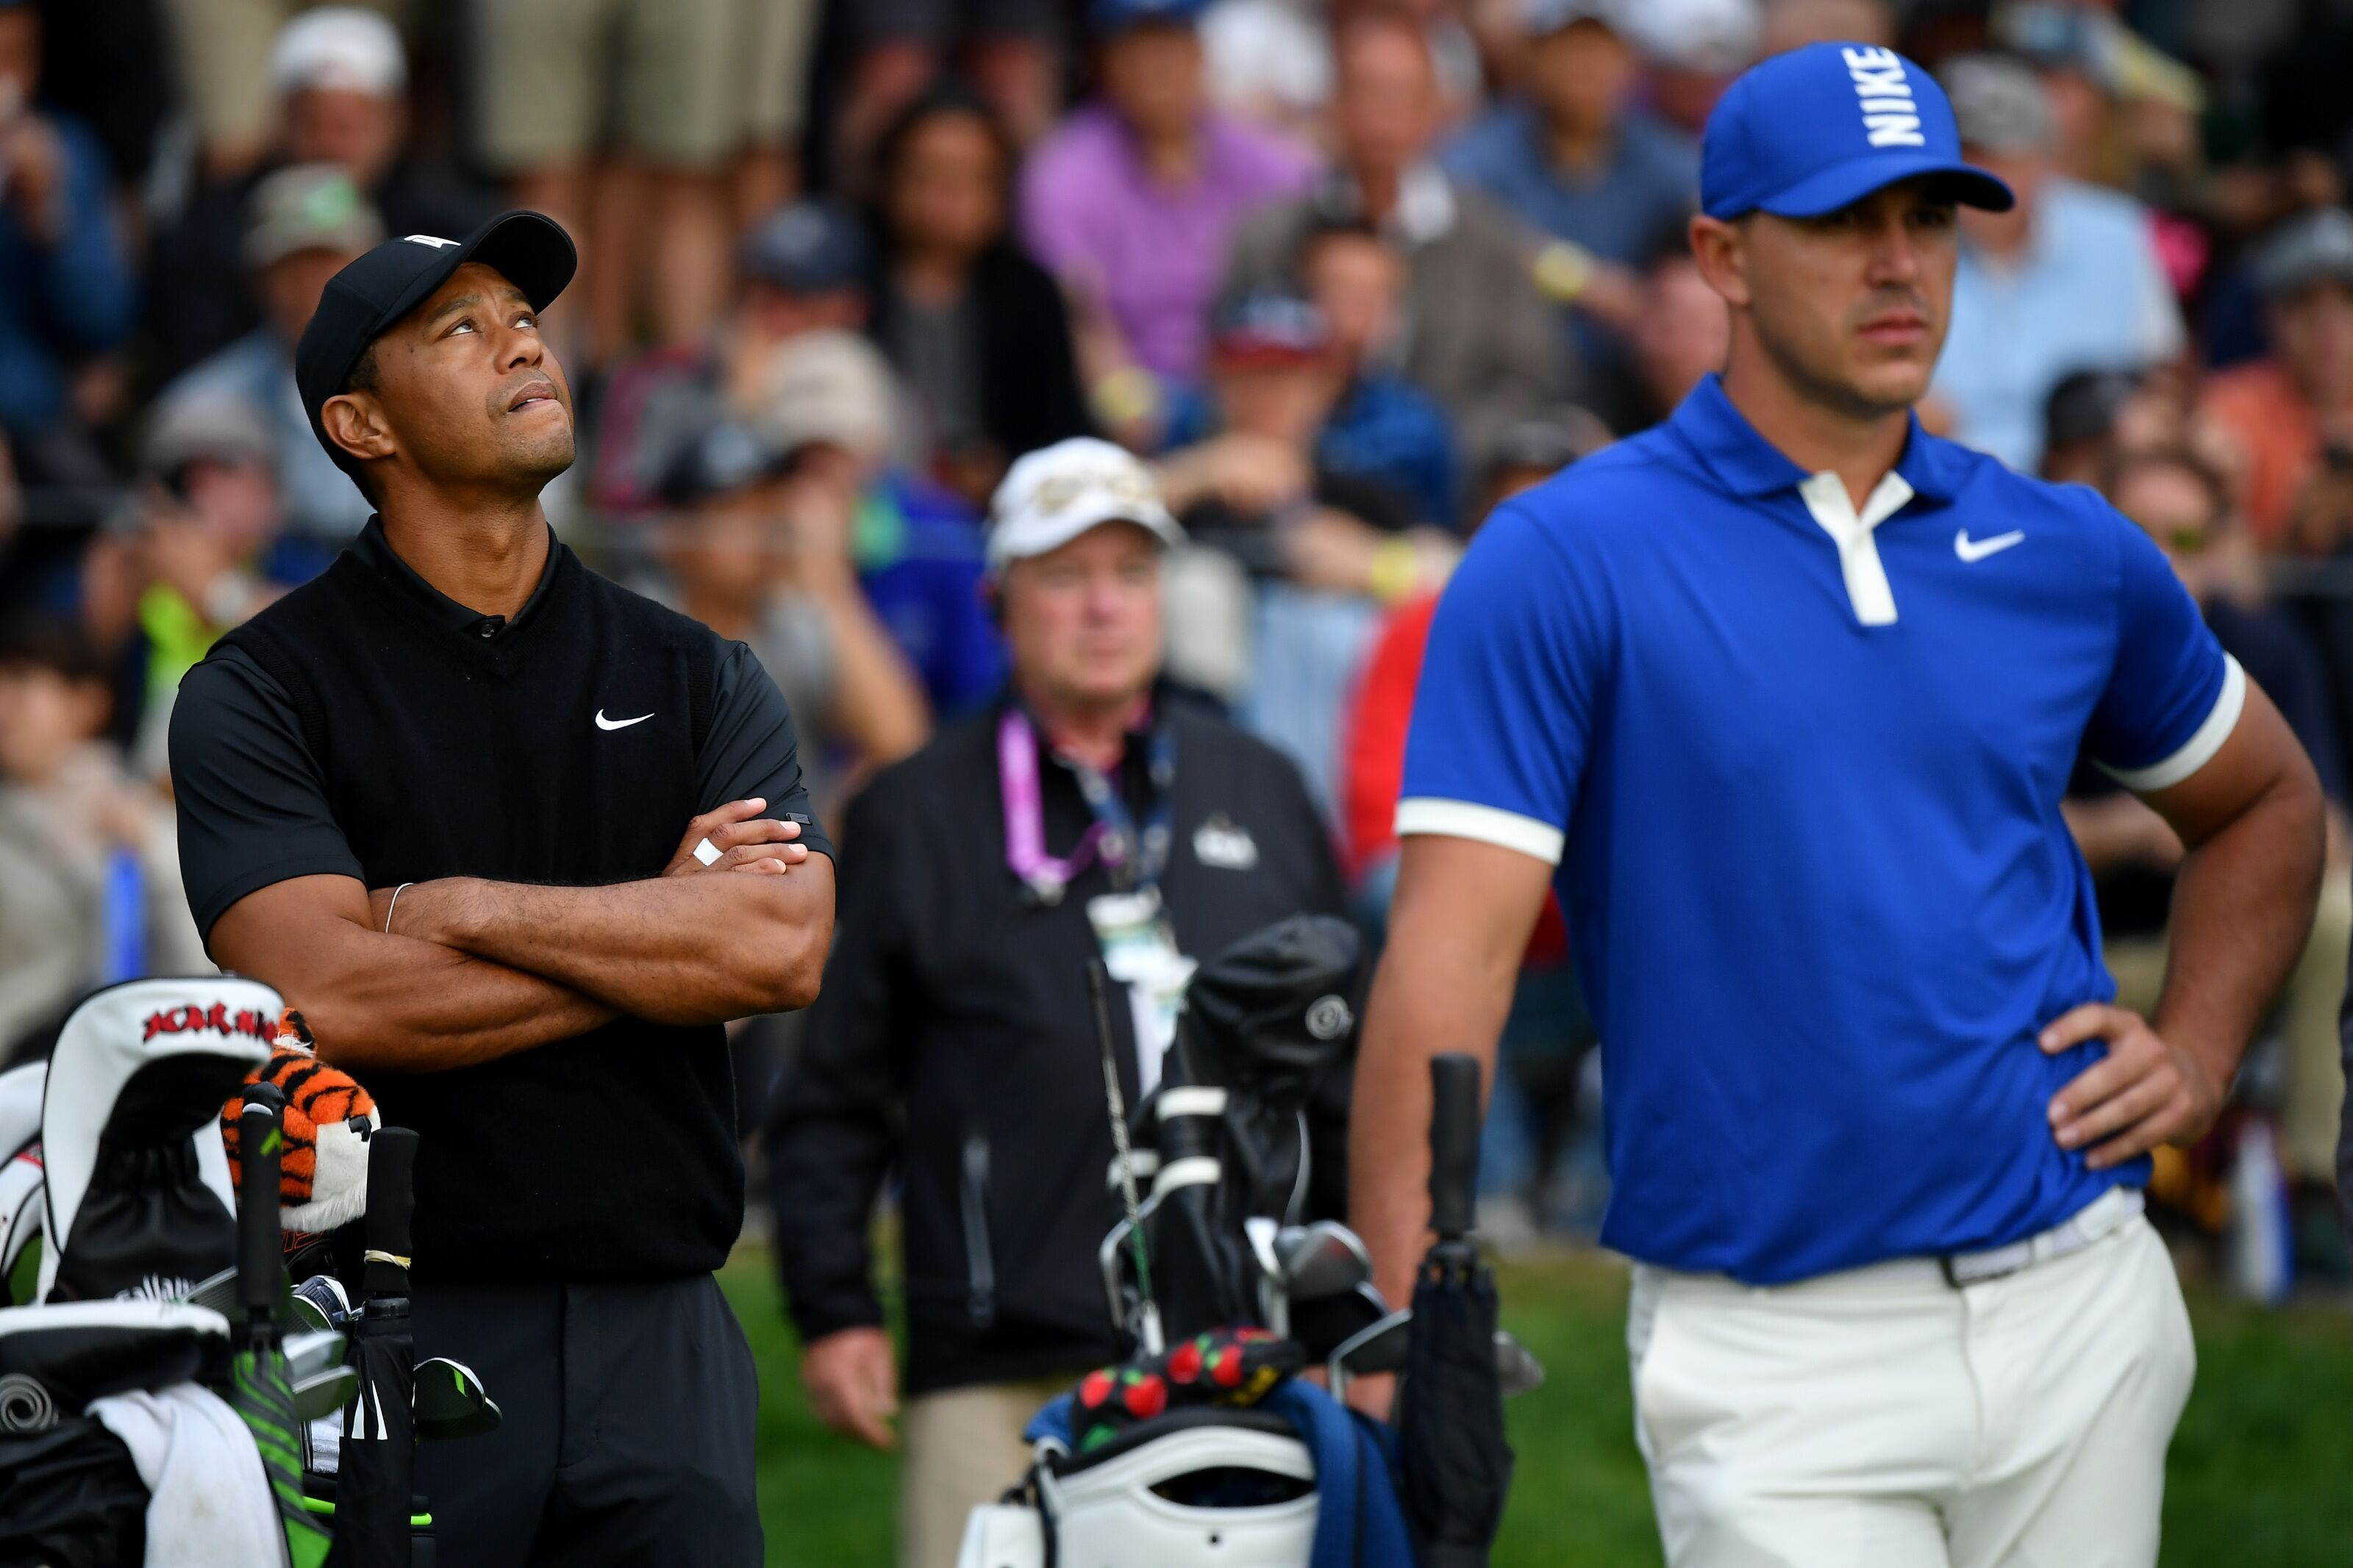 Presidents Cup: Who Tiger Woods should pick to replace Brooks Koepka - Pro Golf Now